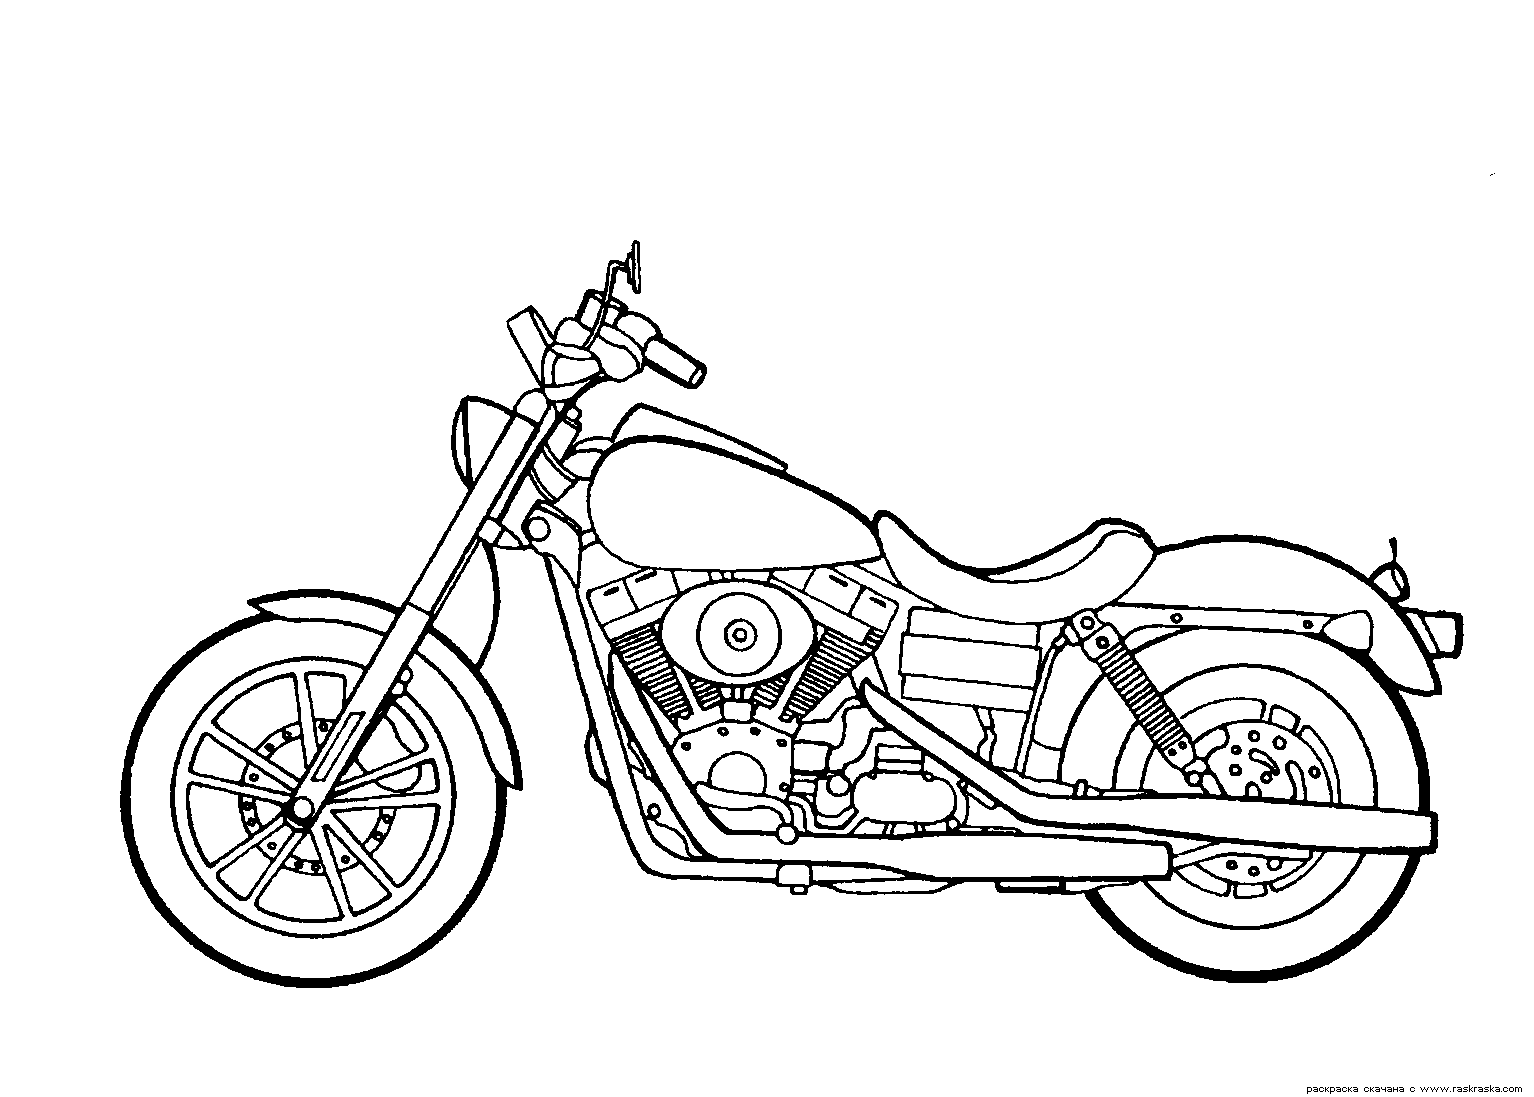 how to draw a motorcycle easy motorcycle drawing at getdrawings free download to motorcycle a draw how